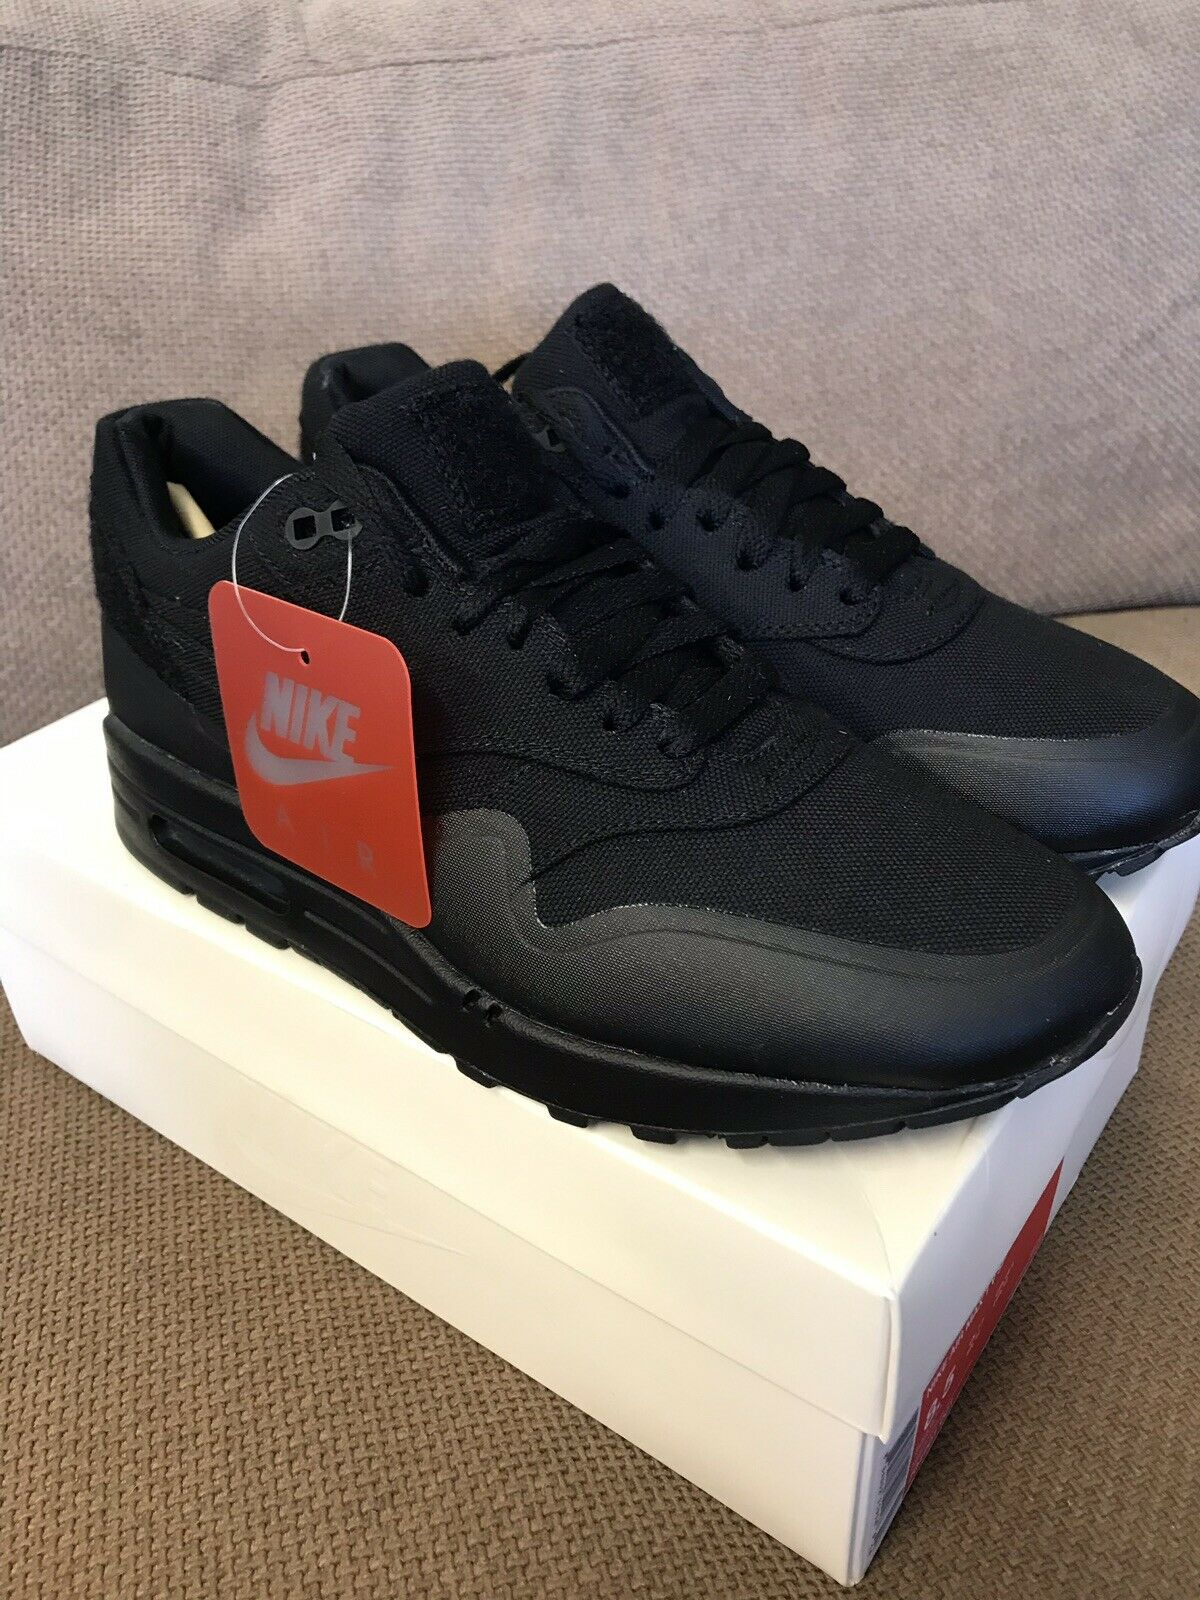 Nike Air Max 1 V SP Patch Pack Black Uk7.5 Brand New With Box